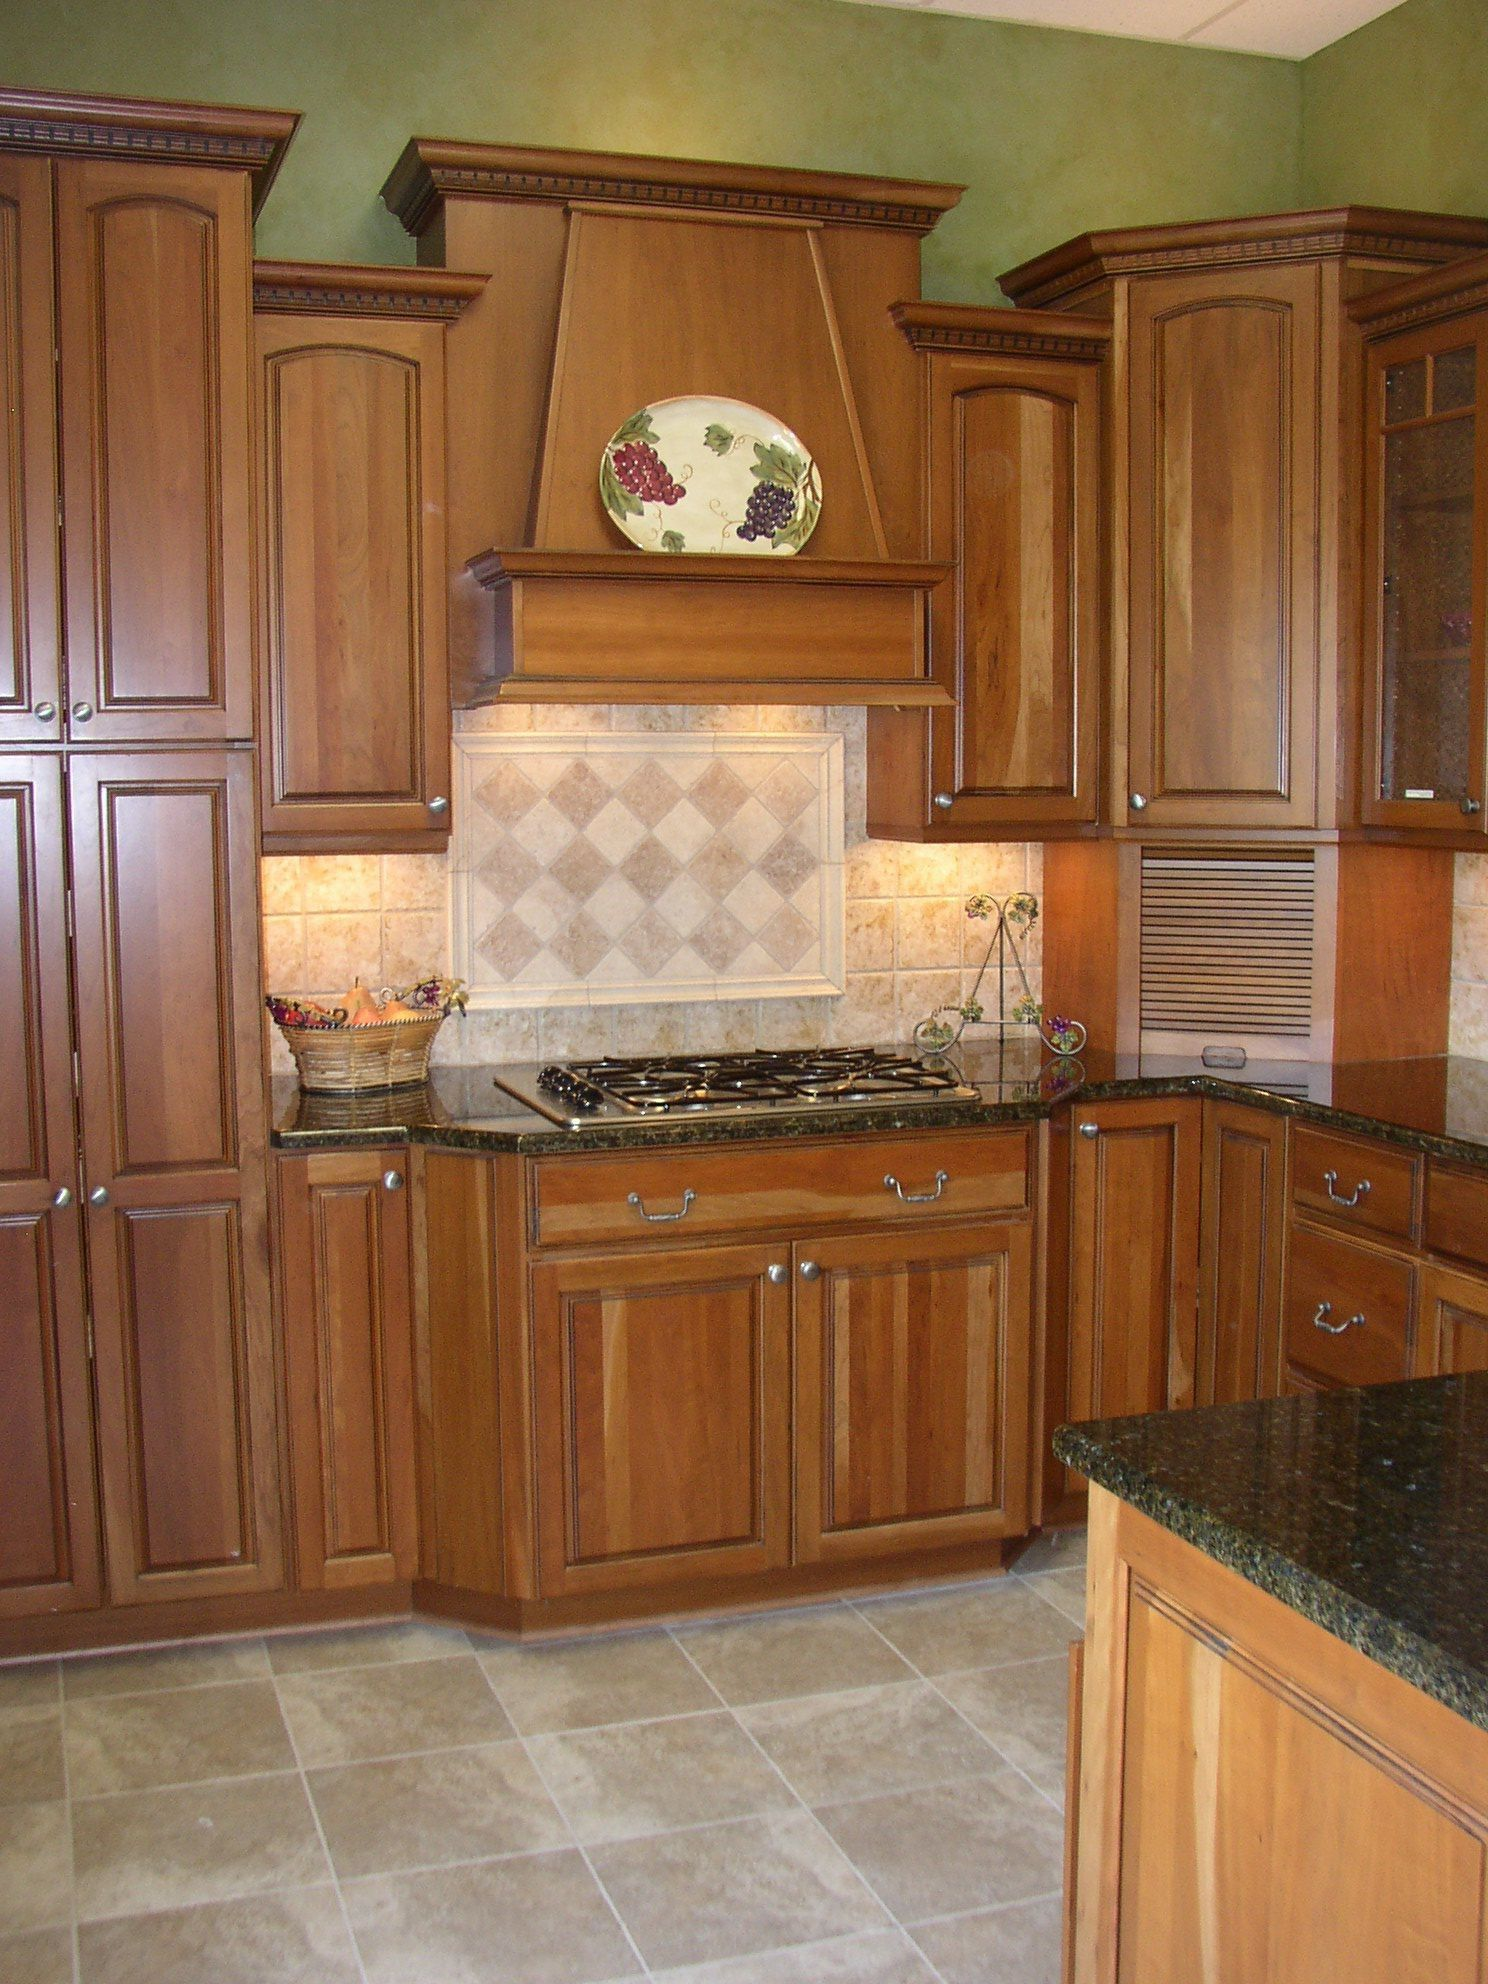 Update Kitchen Cabinets Without Replacing Them By Adding Trim And